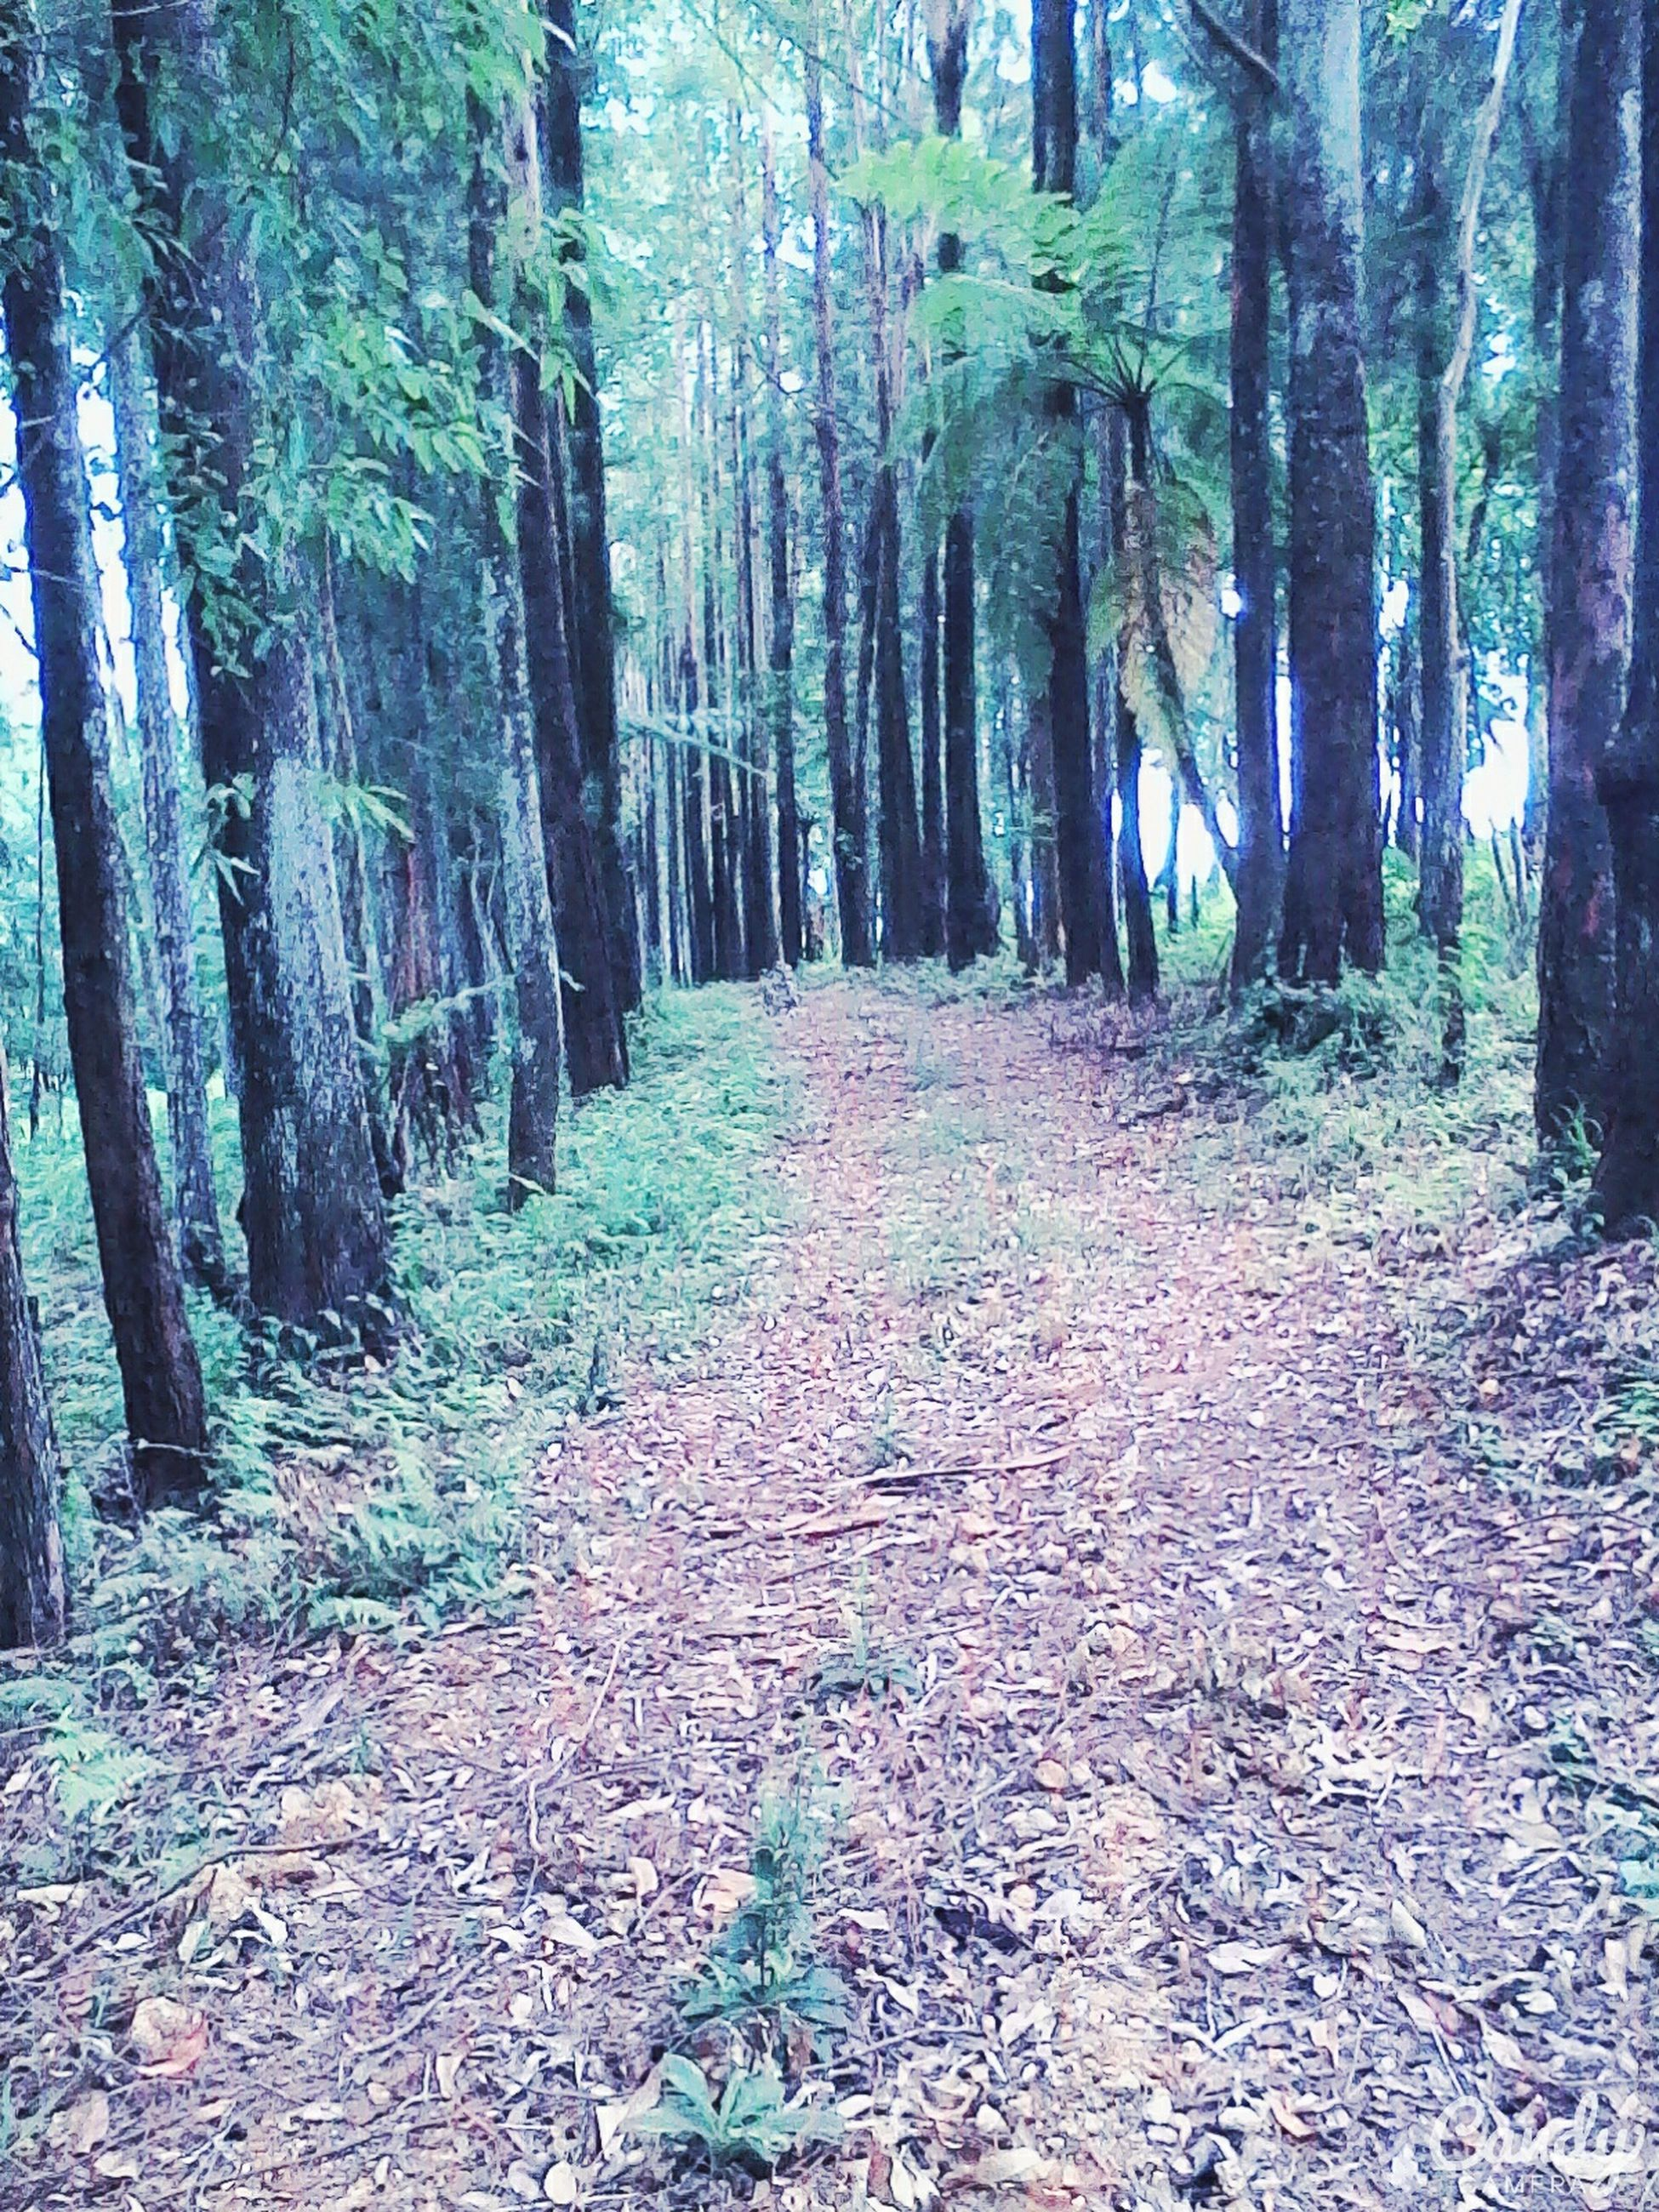 tree, forest, tree trunk, woodland, tranquility, the way forward, tranquil scene, nature, growth, beauty in nature, scenics, diminishing perspective, non-urban scene, landscape, woods, dirt road, day, vanishing point, outdoors, footpath